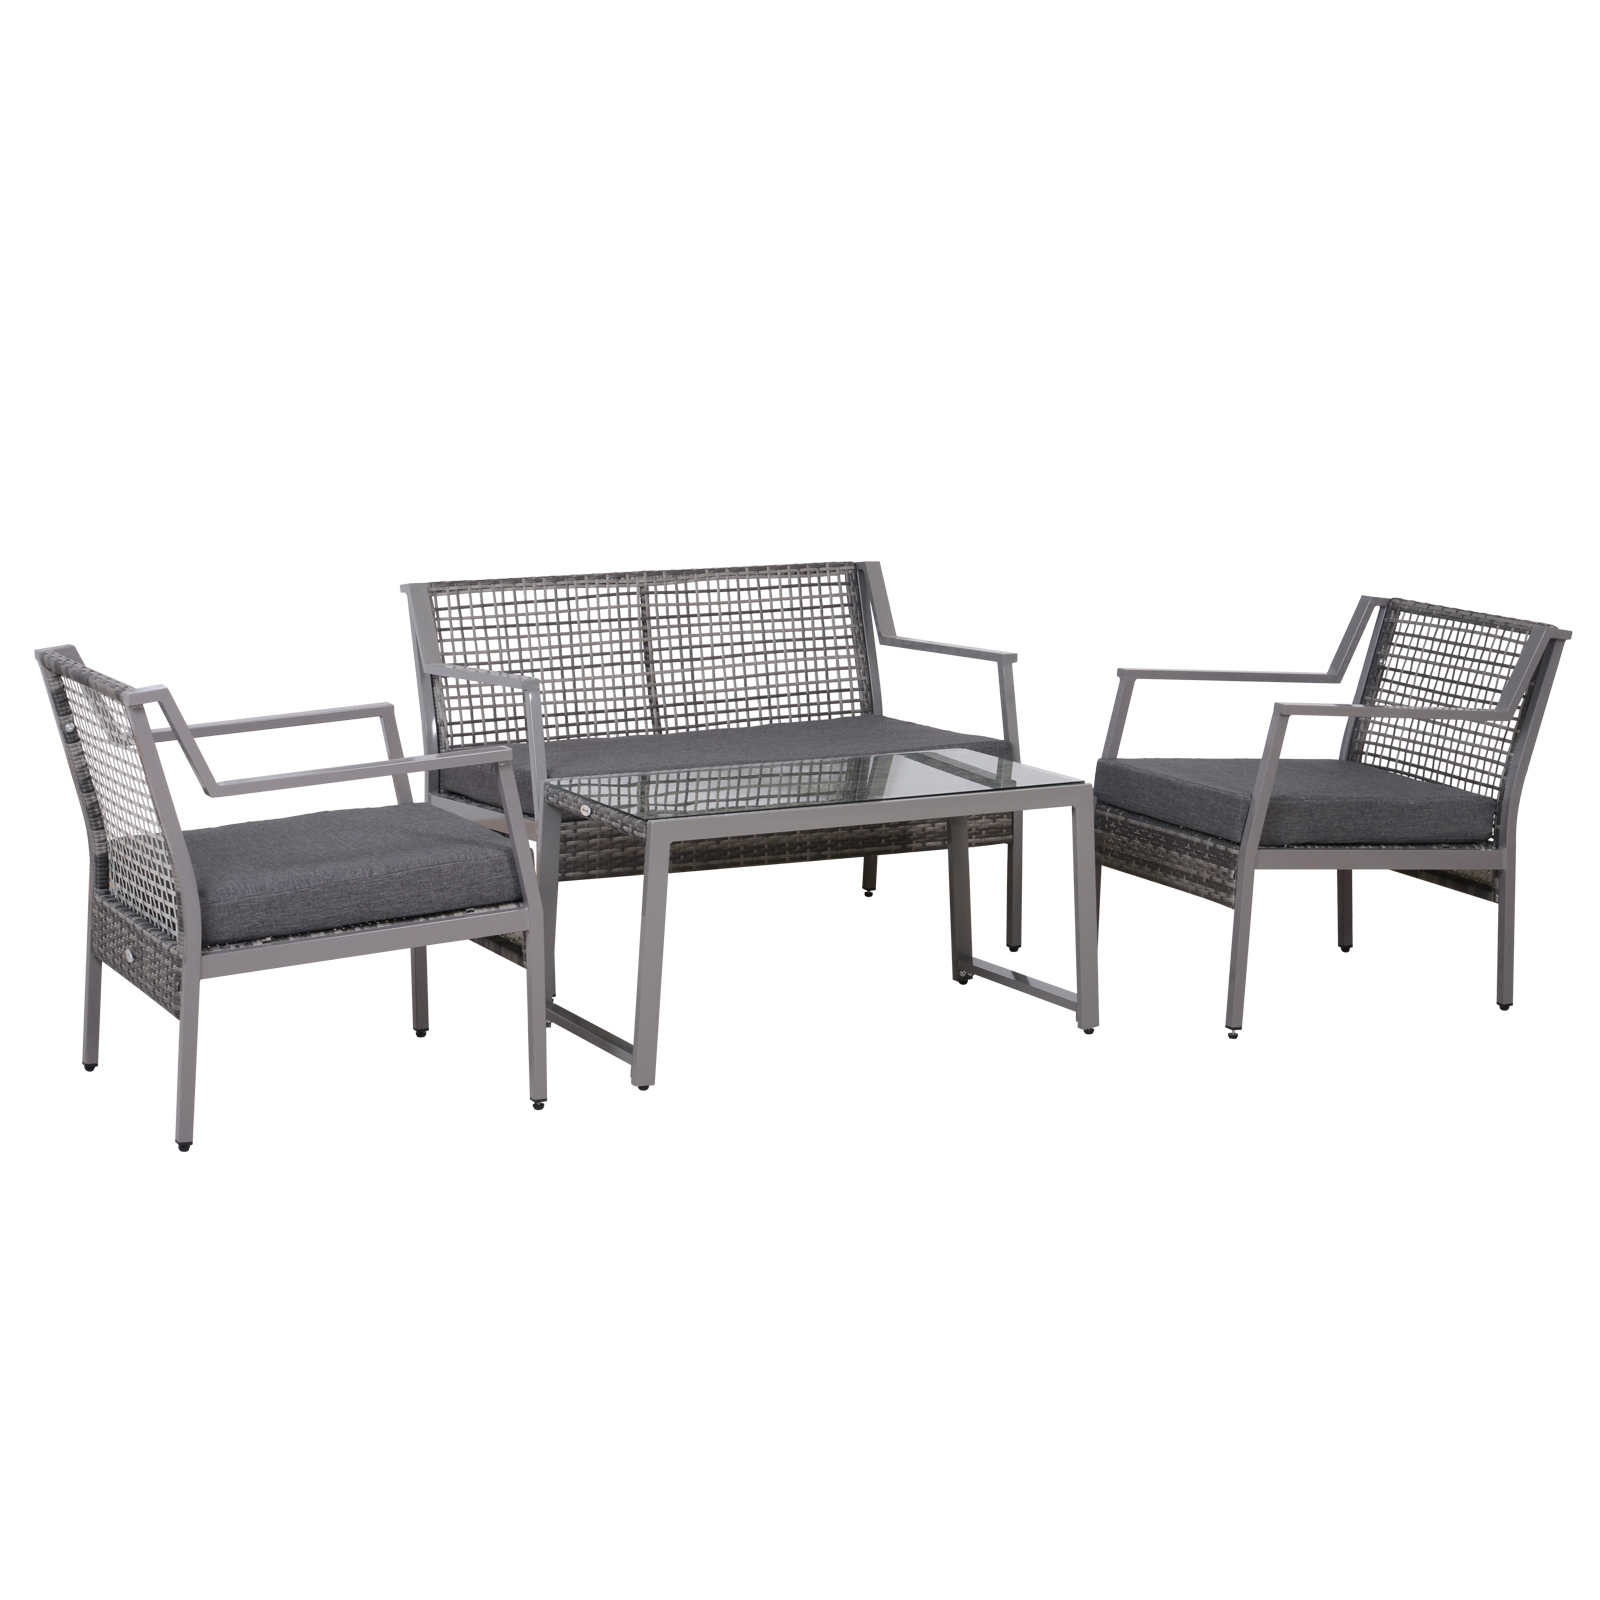 Outsunny Set Garden Furniture 4 Pieces 1 Sofa, 2 Chairs, 1 Tempered Glass Coffee Table Rattan Brown